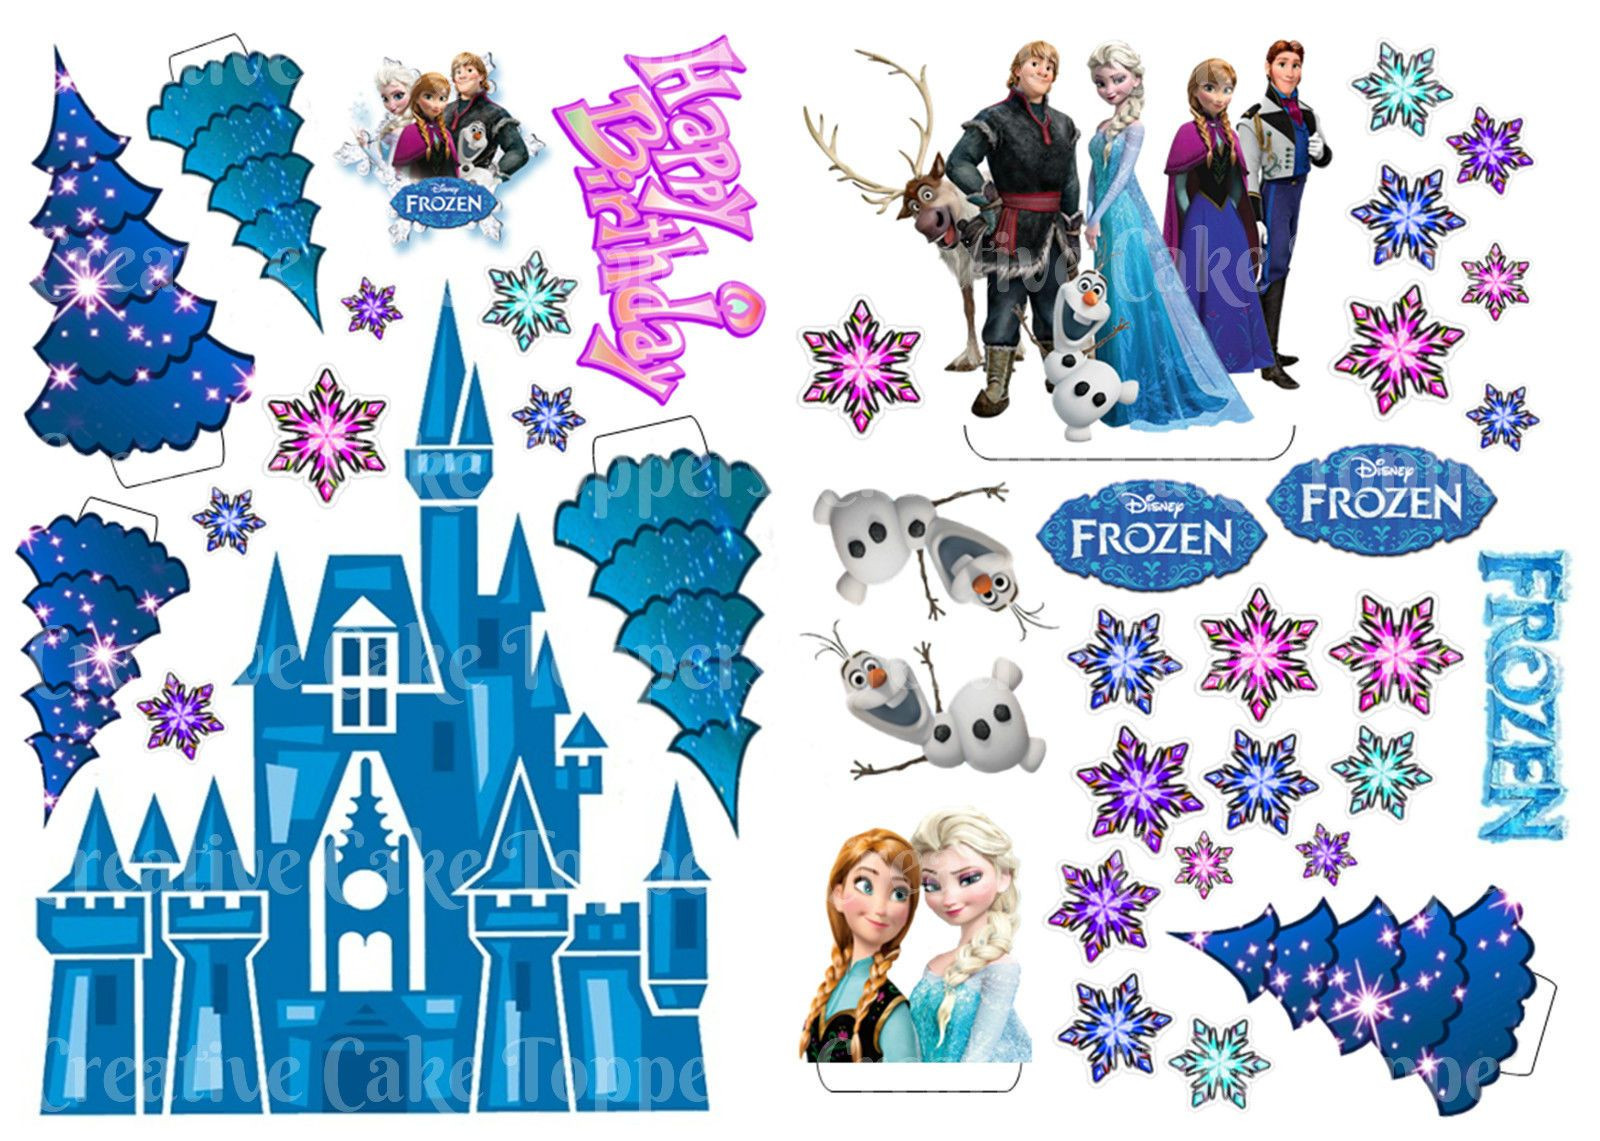 Frozen Cake toppers Printable Disney Frozen Birthday Party Princess Anna Elsa Castle Cake